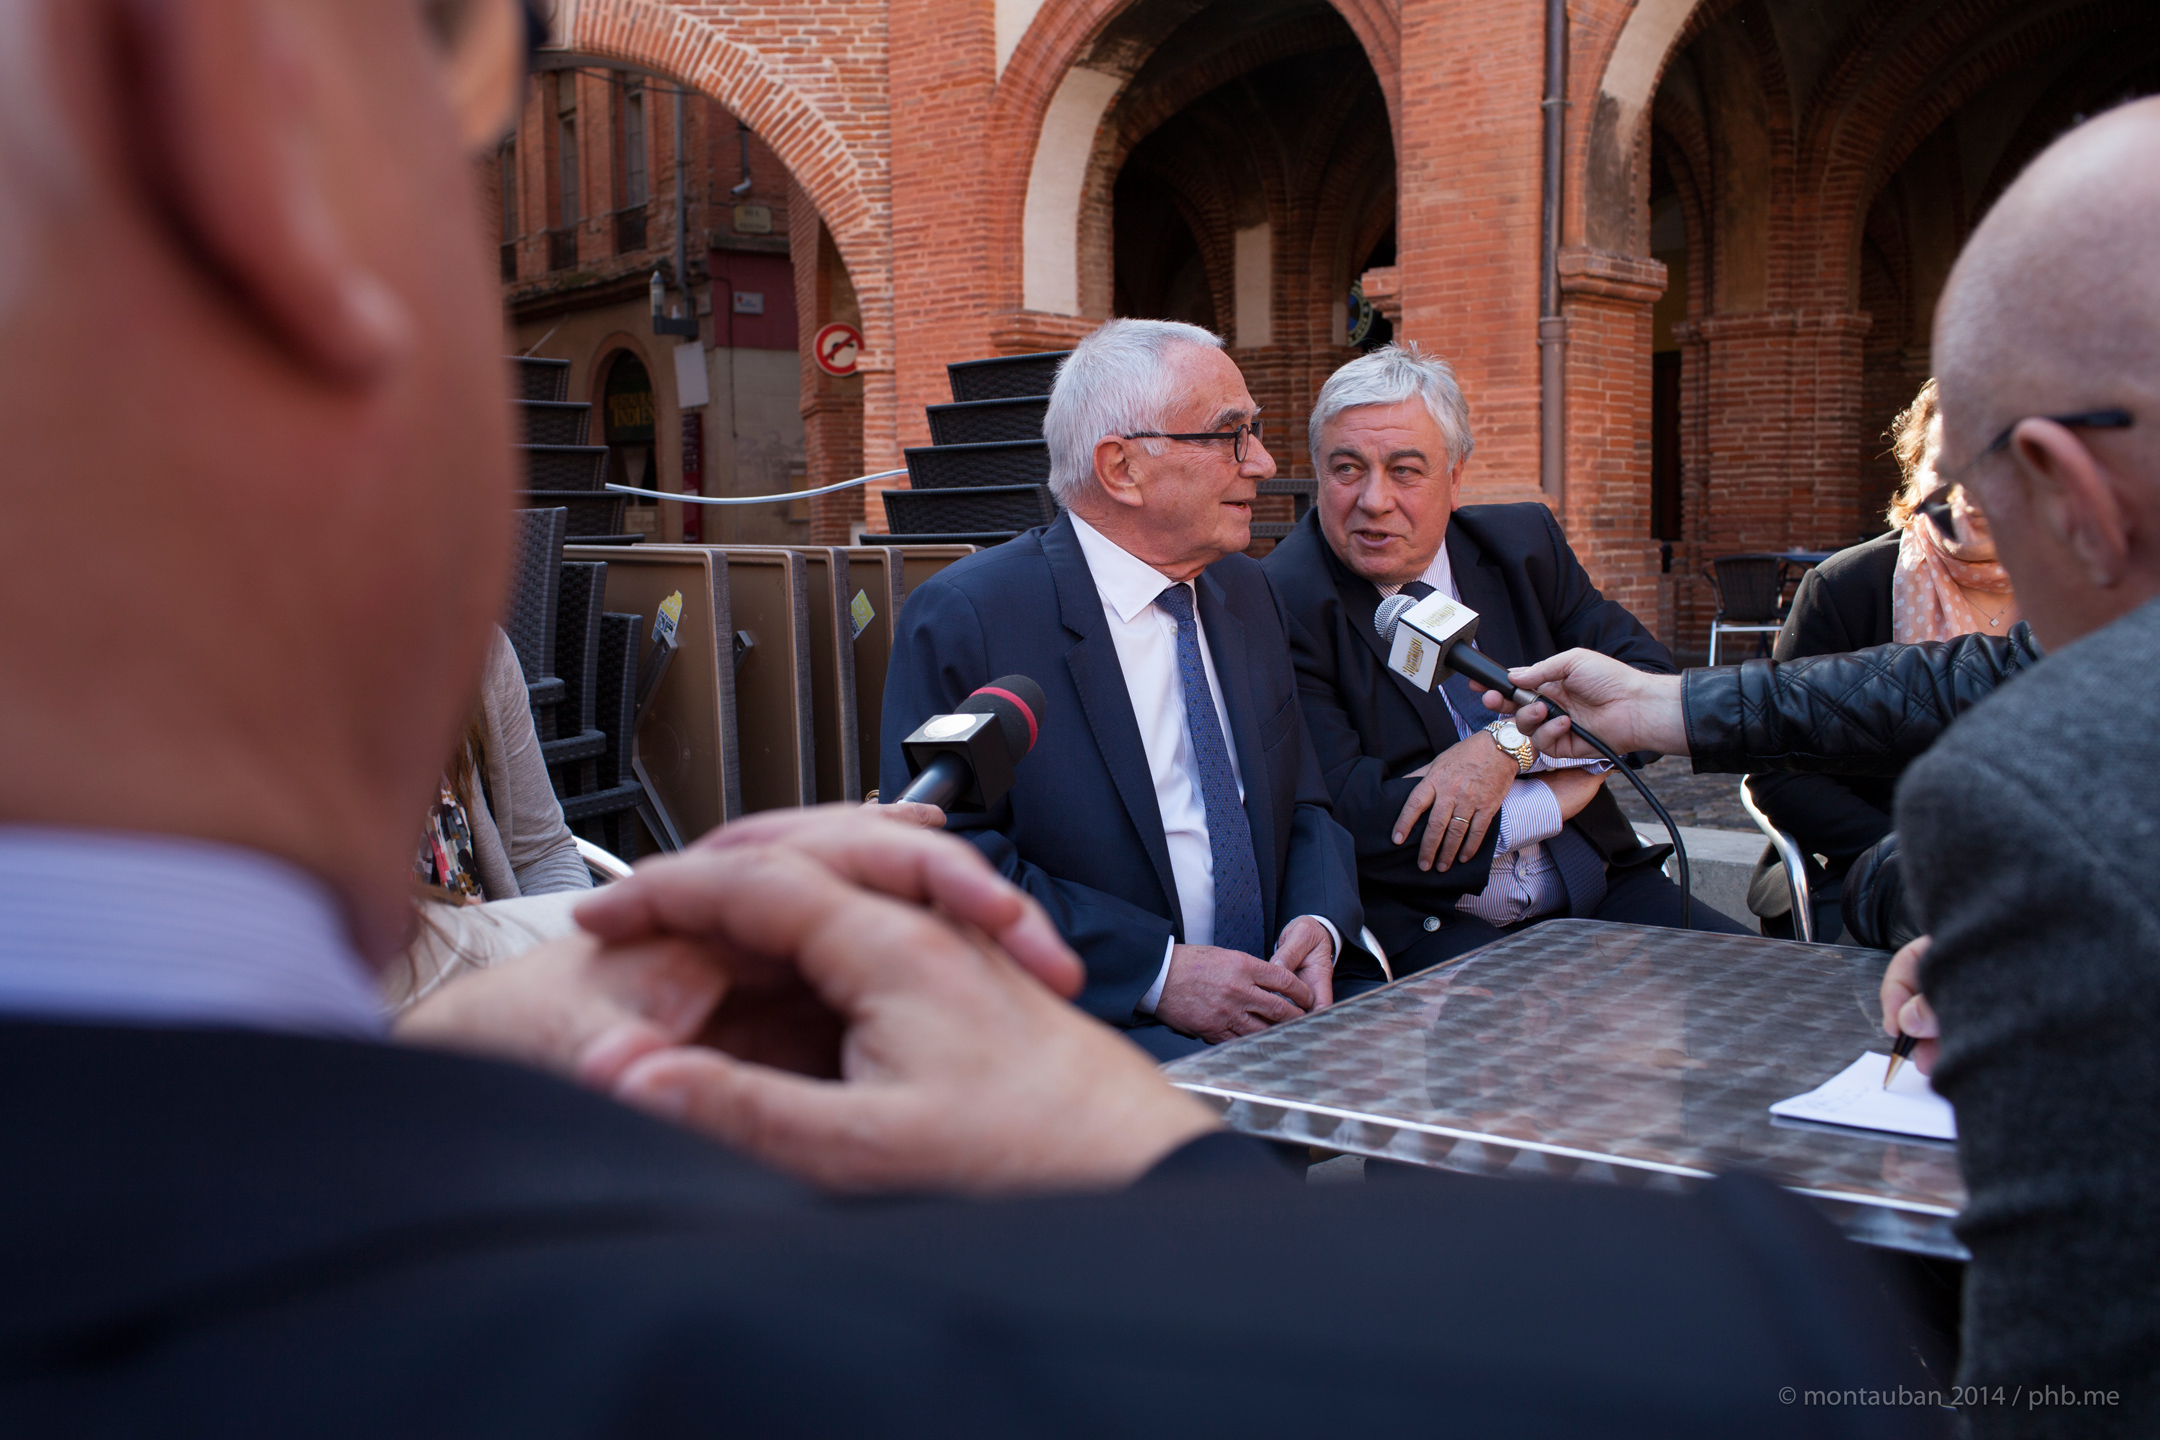 conference-presse-Montauban-2014-Malvy-Garrigues-IMG_1905